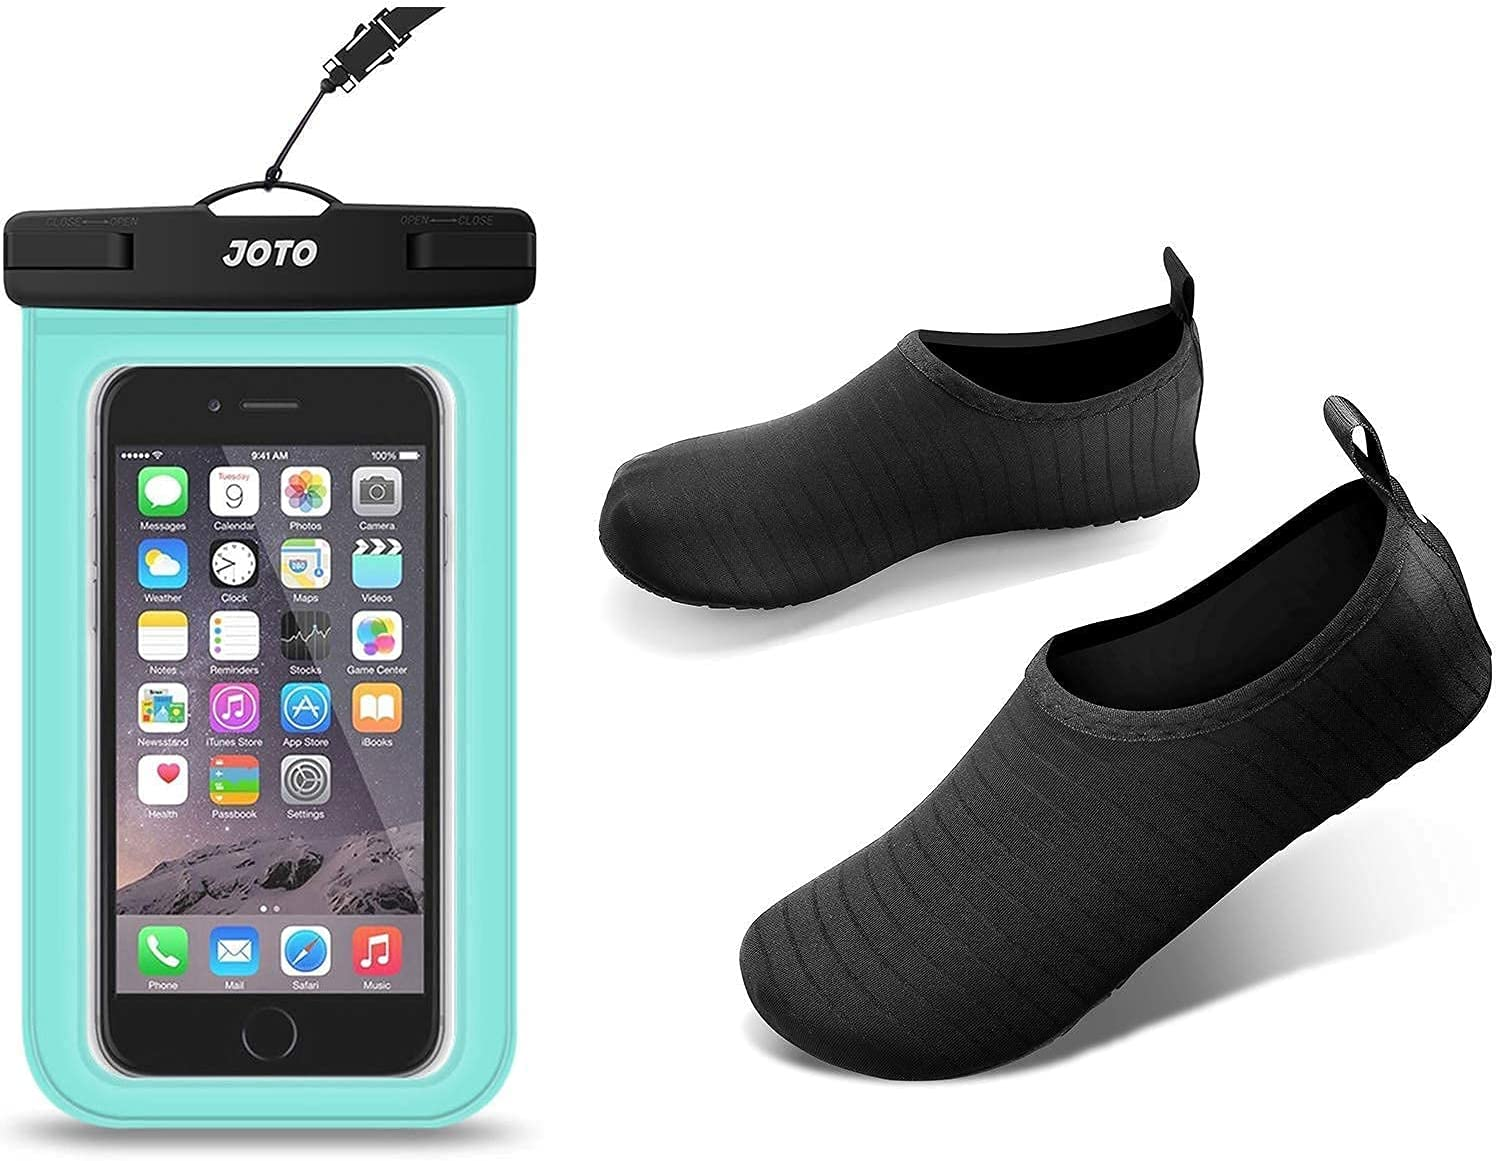 JOTO Universal Waterproof Pouch Cellphone Dry Bag Case Bundle with Water Shoes for Women Men Kids, Barefoot Quick-Dry Aqua Water Socks Slip-on Swim Beach Shoes